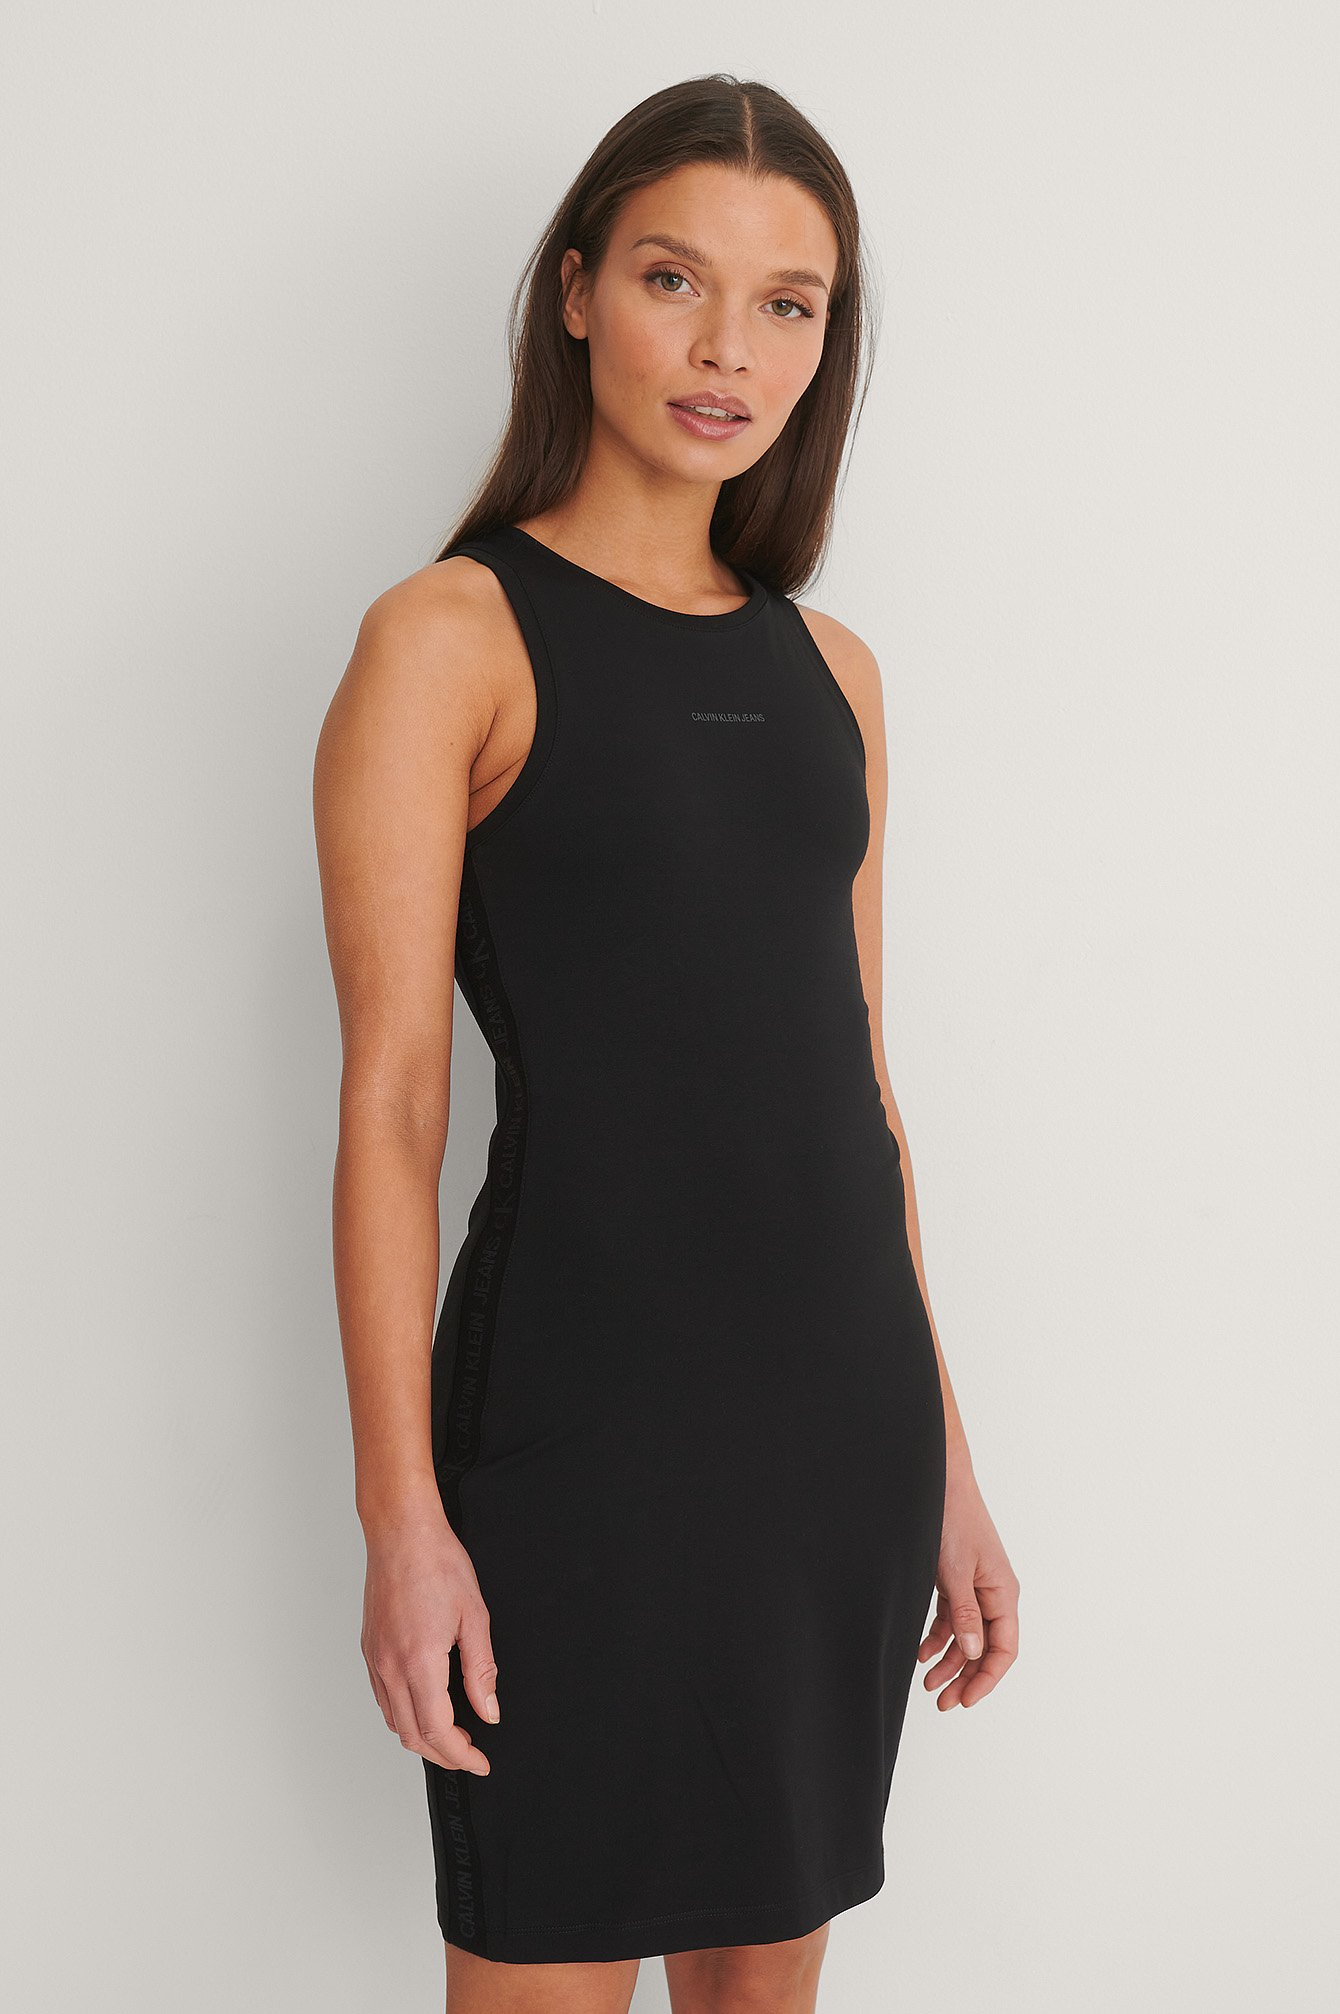 CK Black Logo Trim Racer Back Dress